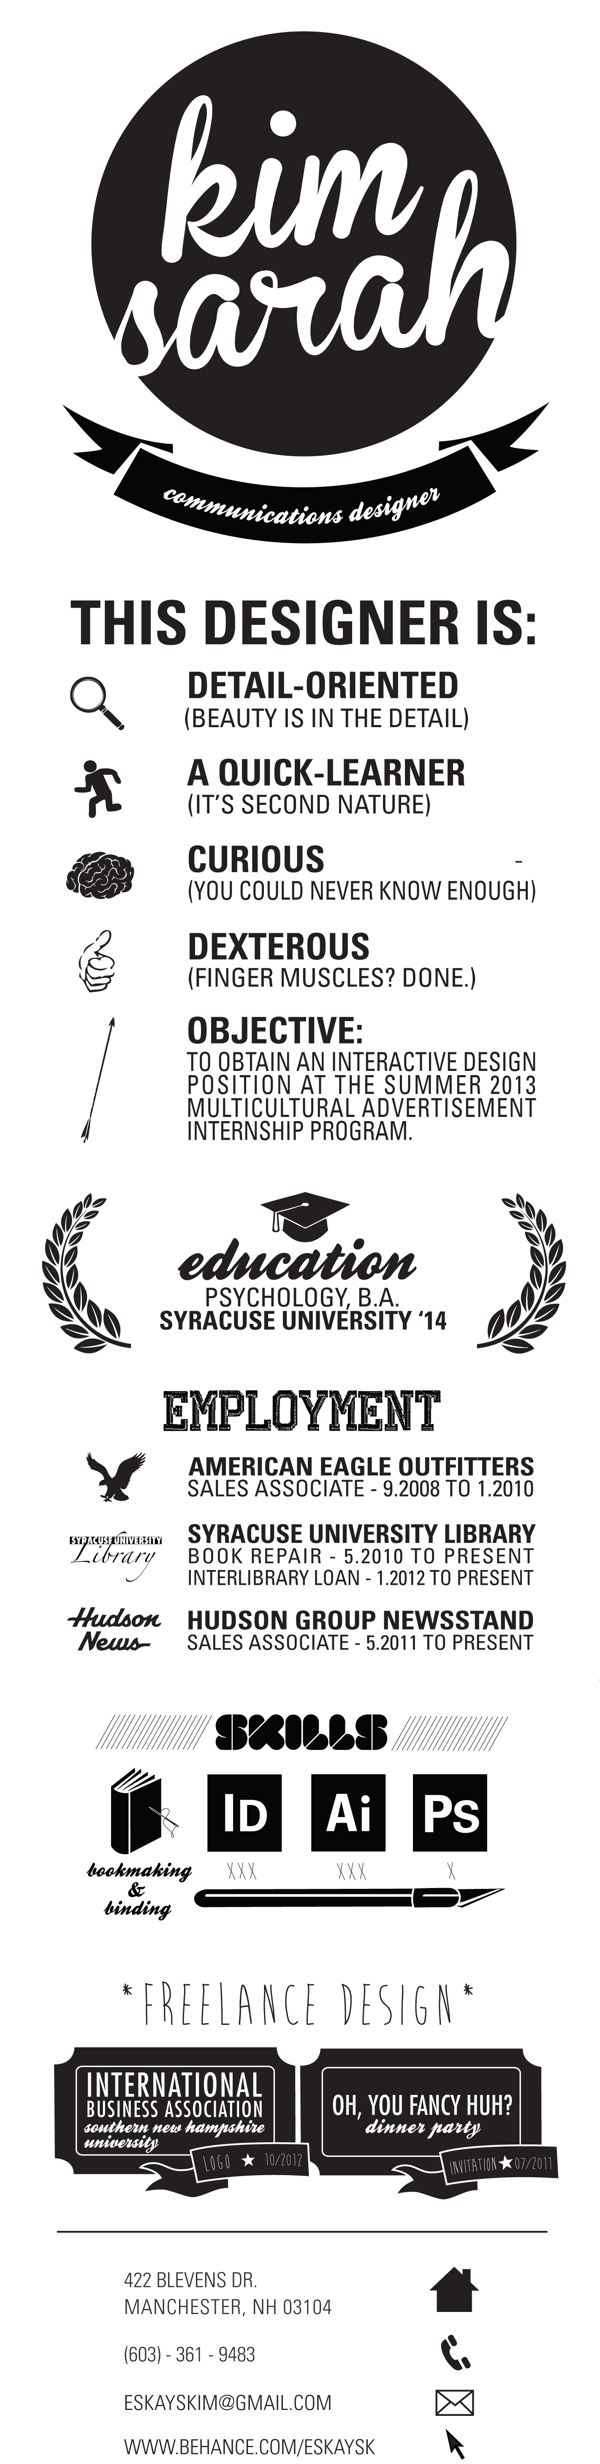 Picnictoimpeachus  Personable  Ideas About Infographic Resume On Pinterest  My Portfolio  With Gorgeous  Ideas About Infographic Resume On Pinterest  My Portfolio Resume And Resume Design With Easy On The Eye Food Server Resume Also Targeted Resume In Addition Tips For Resume And Free Resume Templates For Microsoft Word As Well As Career Objective On Resume Additionally Microsoft Resume From Pinterestcom With Picnictoimpeachus  Gorgeous  Ideas About Infographic Resume On Pinterest  My Portfolio  With Easy On The Eye  Ideas About Infographic Resume On Pinterest  My Portfolio Resume And Resume Design And Personable Food Server Resume Also Targeted Resume In Addition Tips For Resume From Pinterestcom